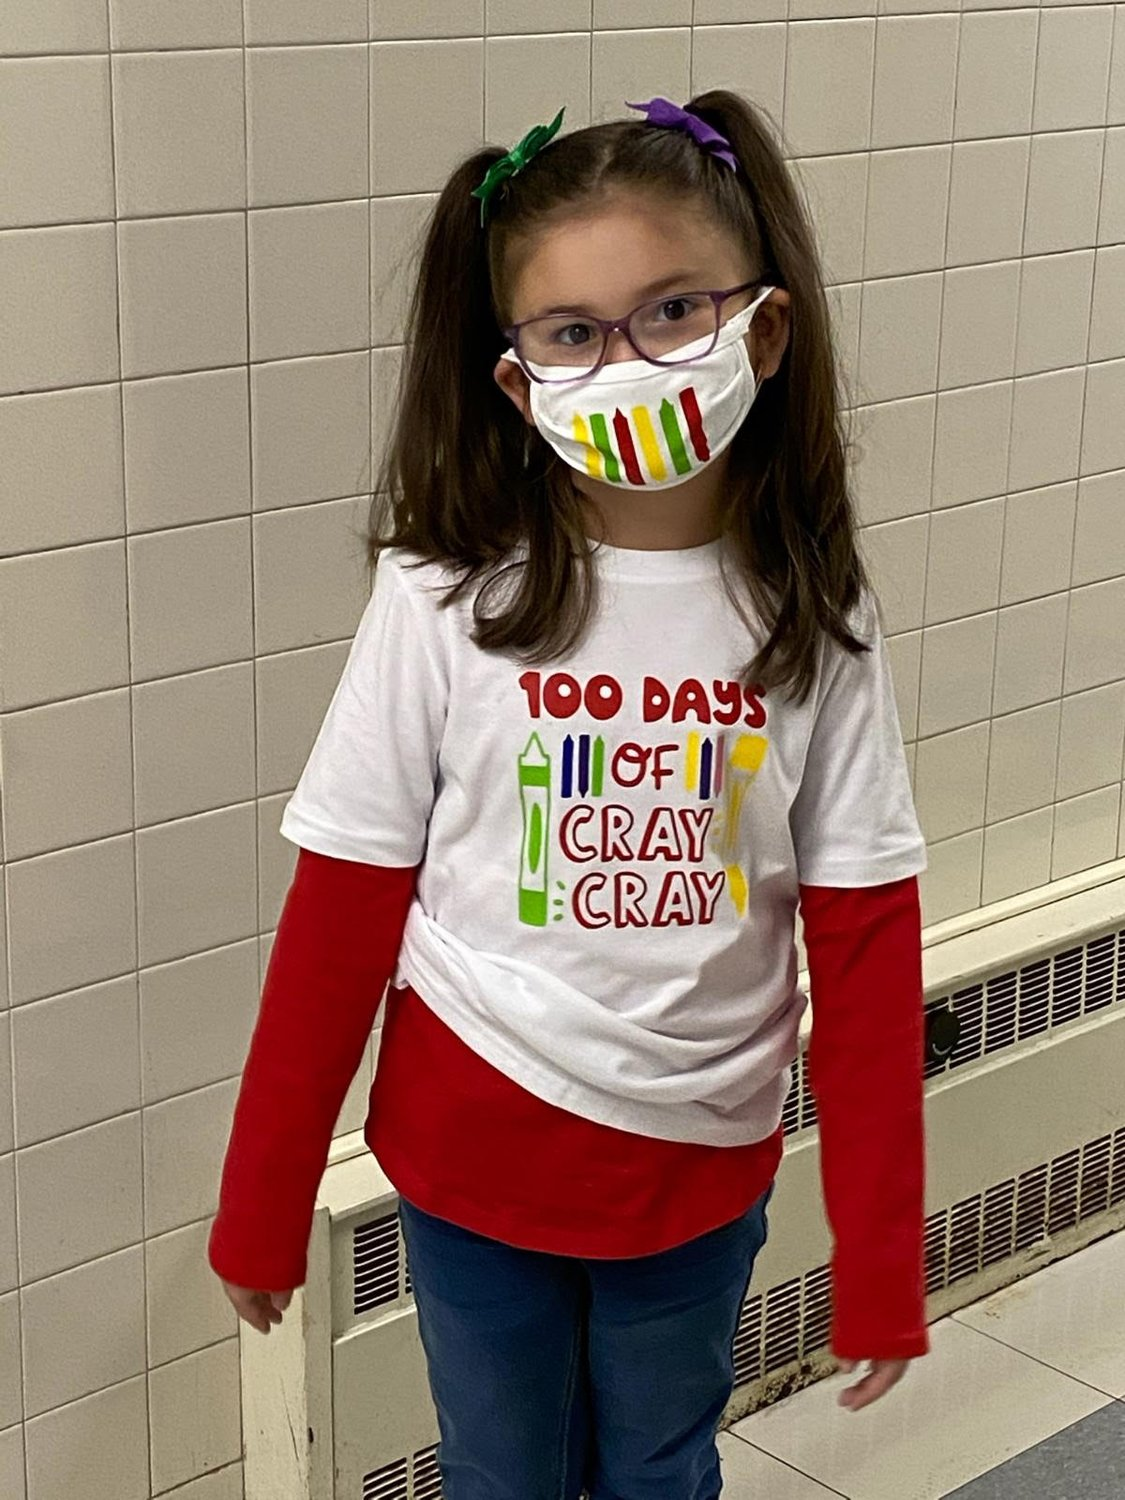 Isabella is ready for the 100th day of school.